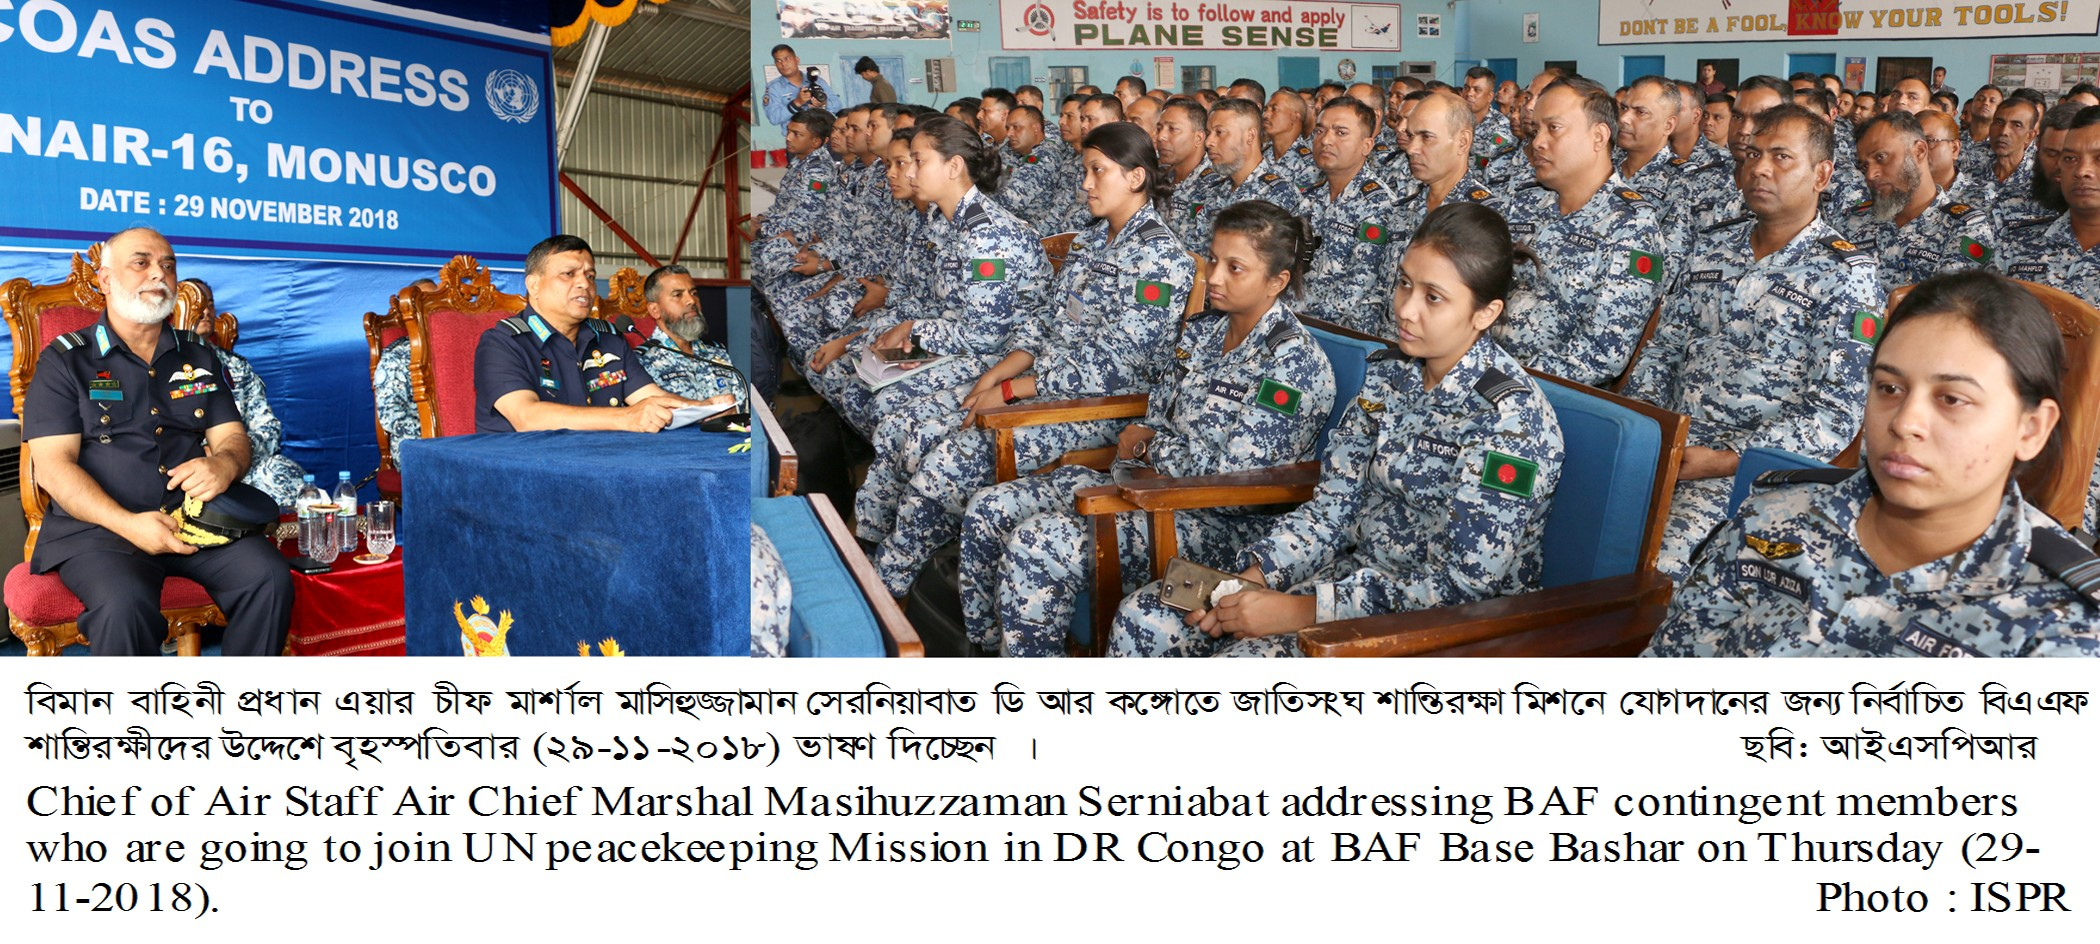 AIR CHIEF BRIEFS CONGO-BOUND BAF PEACEKEEPERS